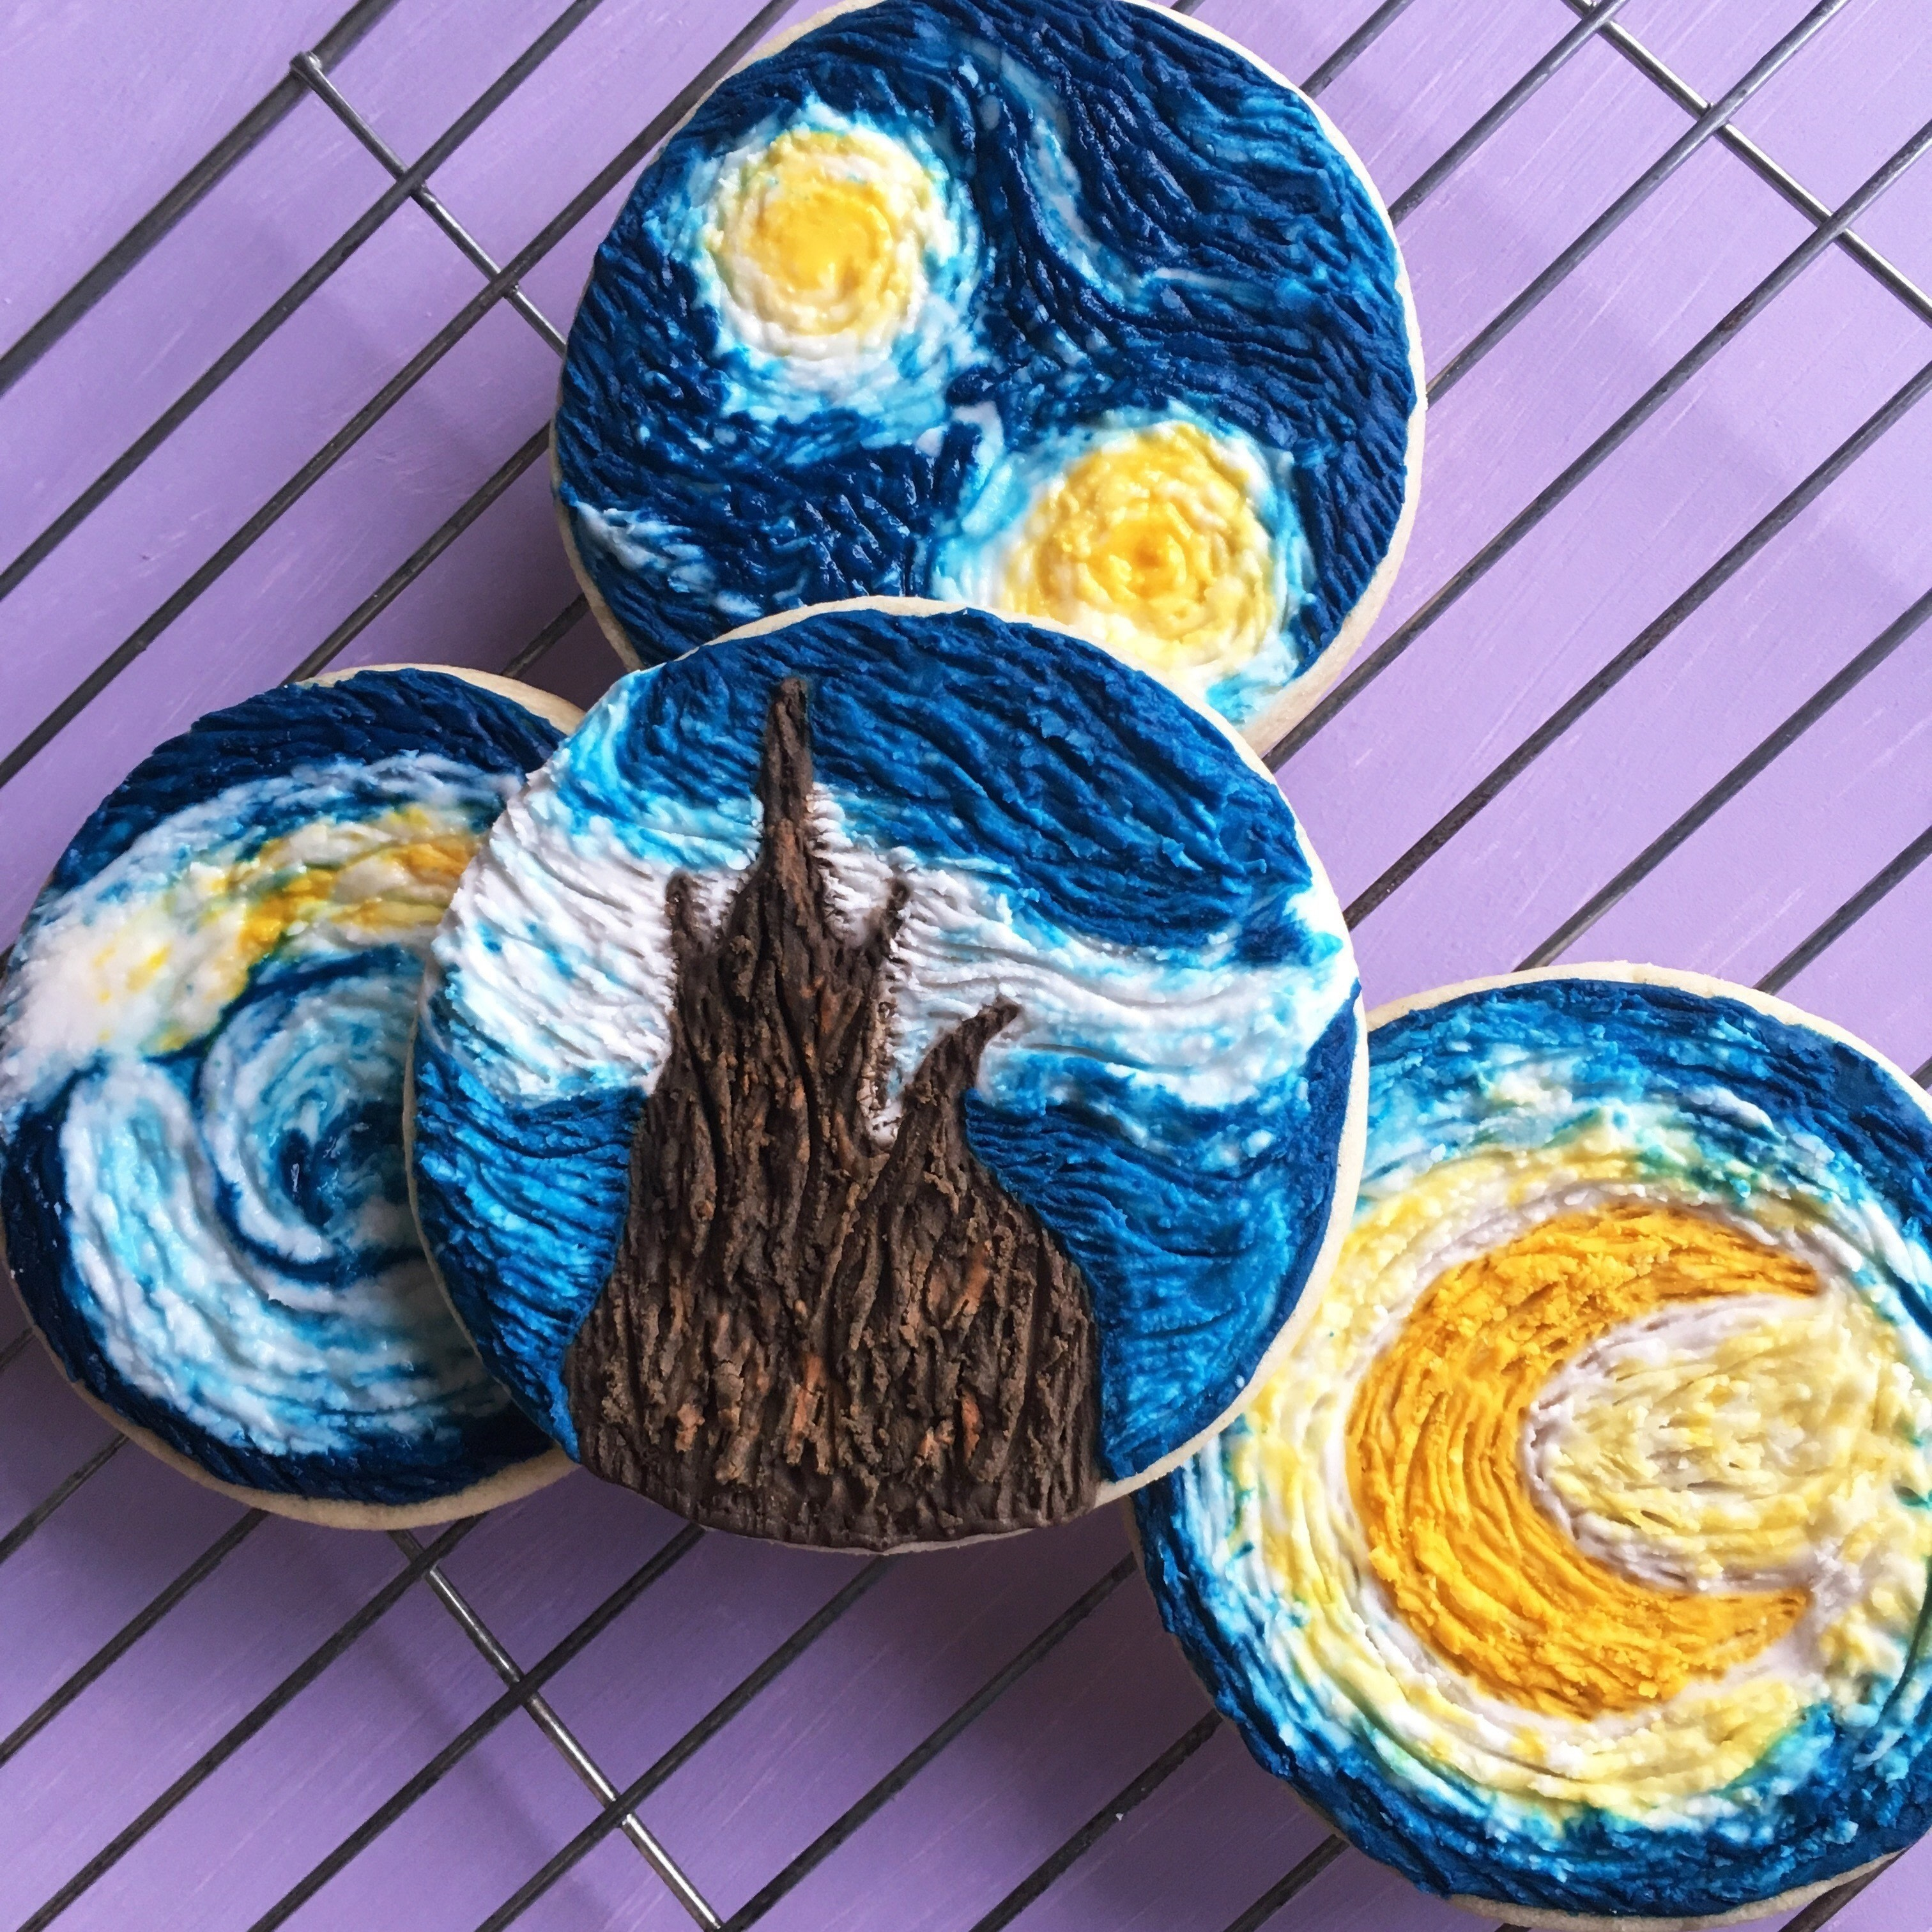 How To Make Starry Night Inspired Cookies · How To Make Decorative ...